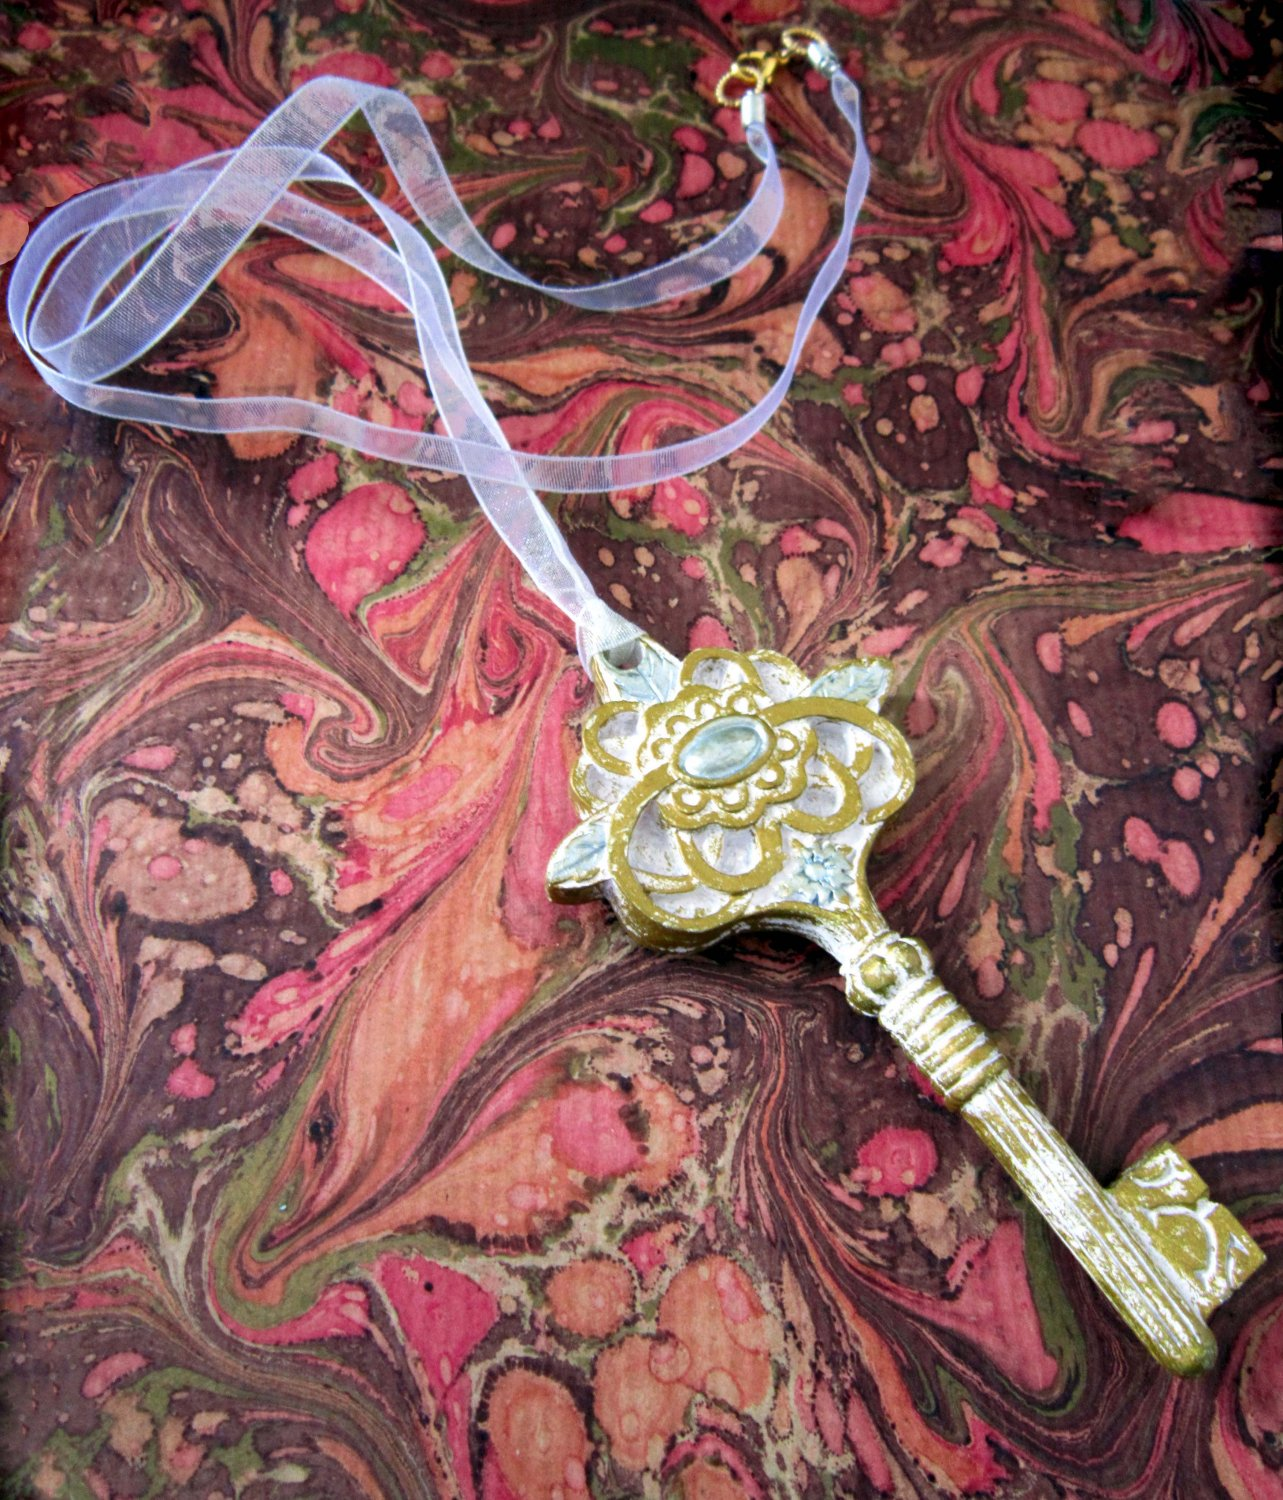 On Key: Vintage-inspired Silver and Gold Filigree Key Pendant White Ribbon Necklace